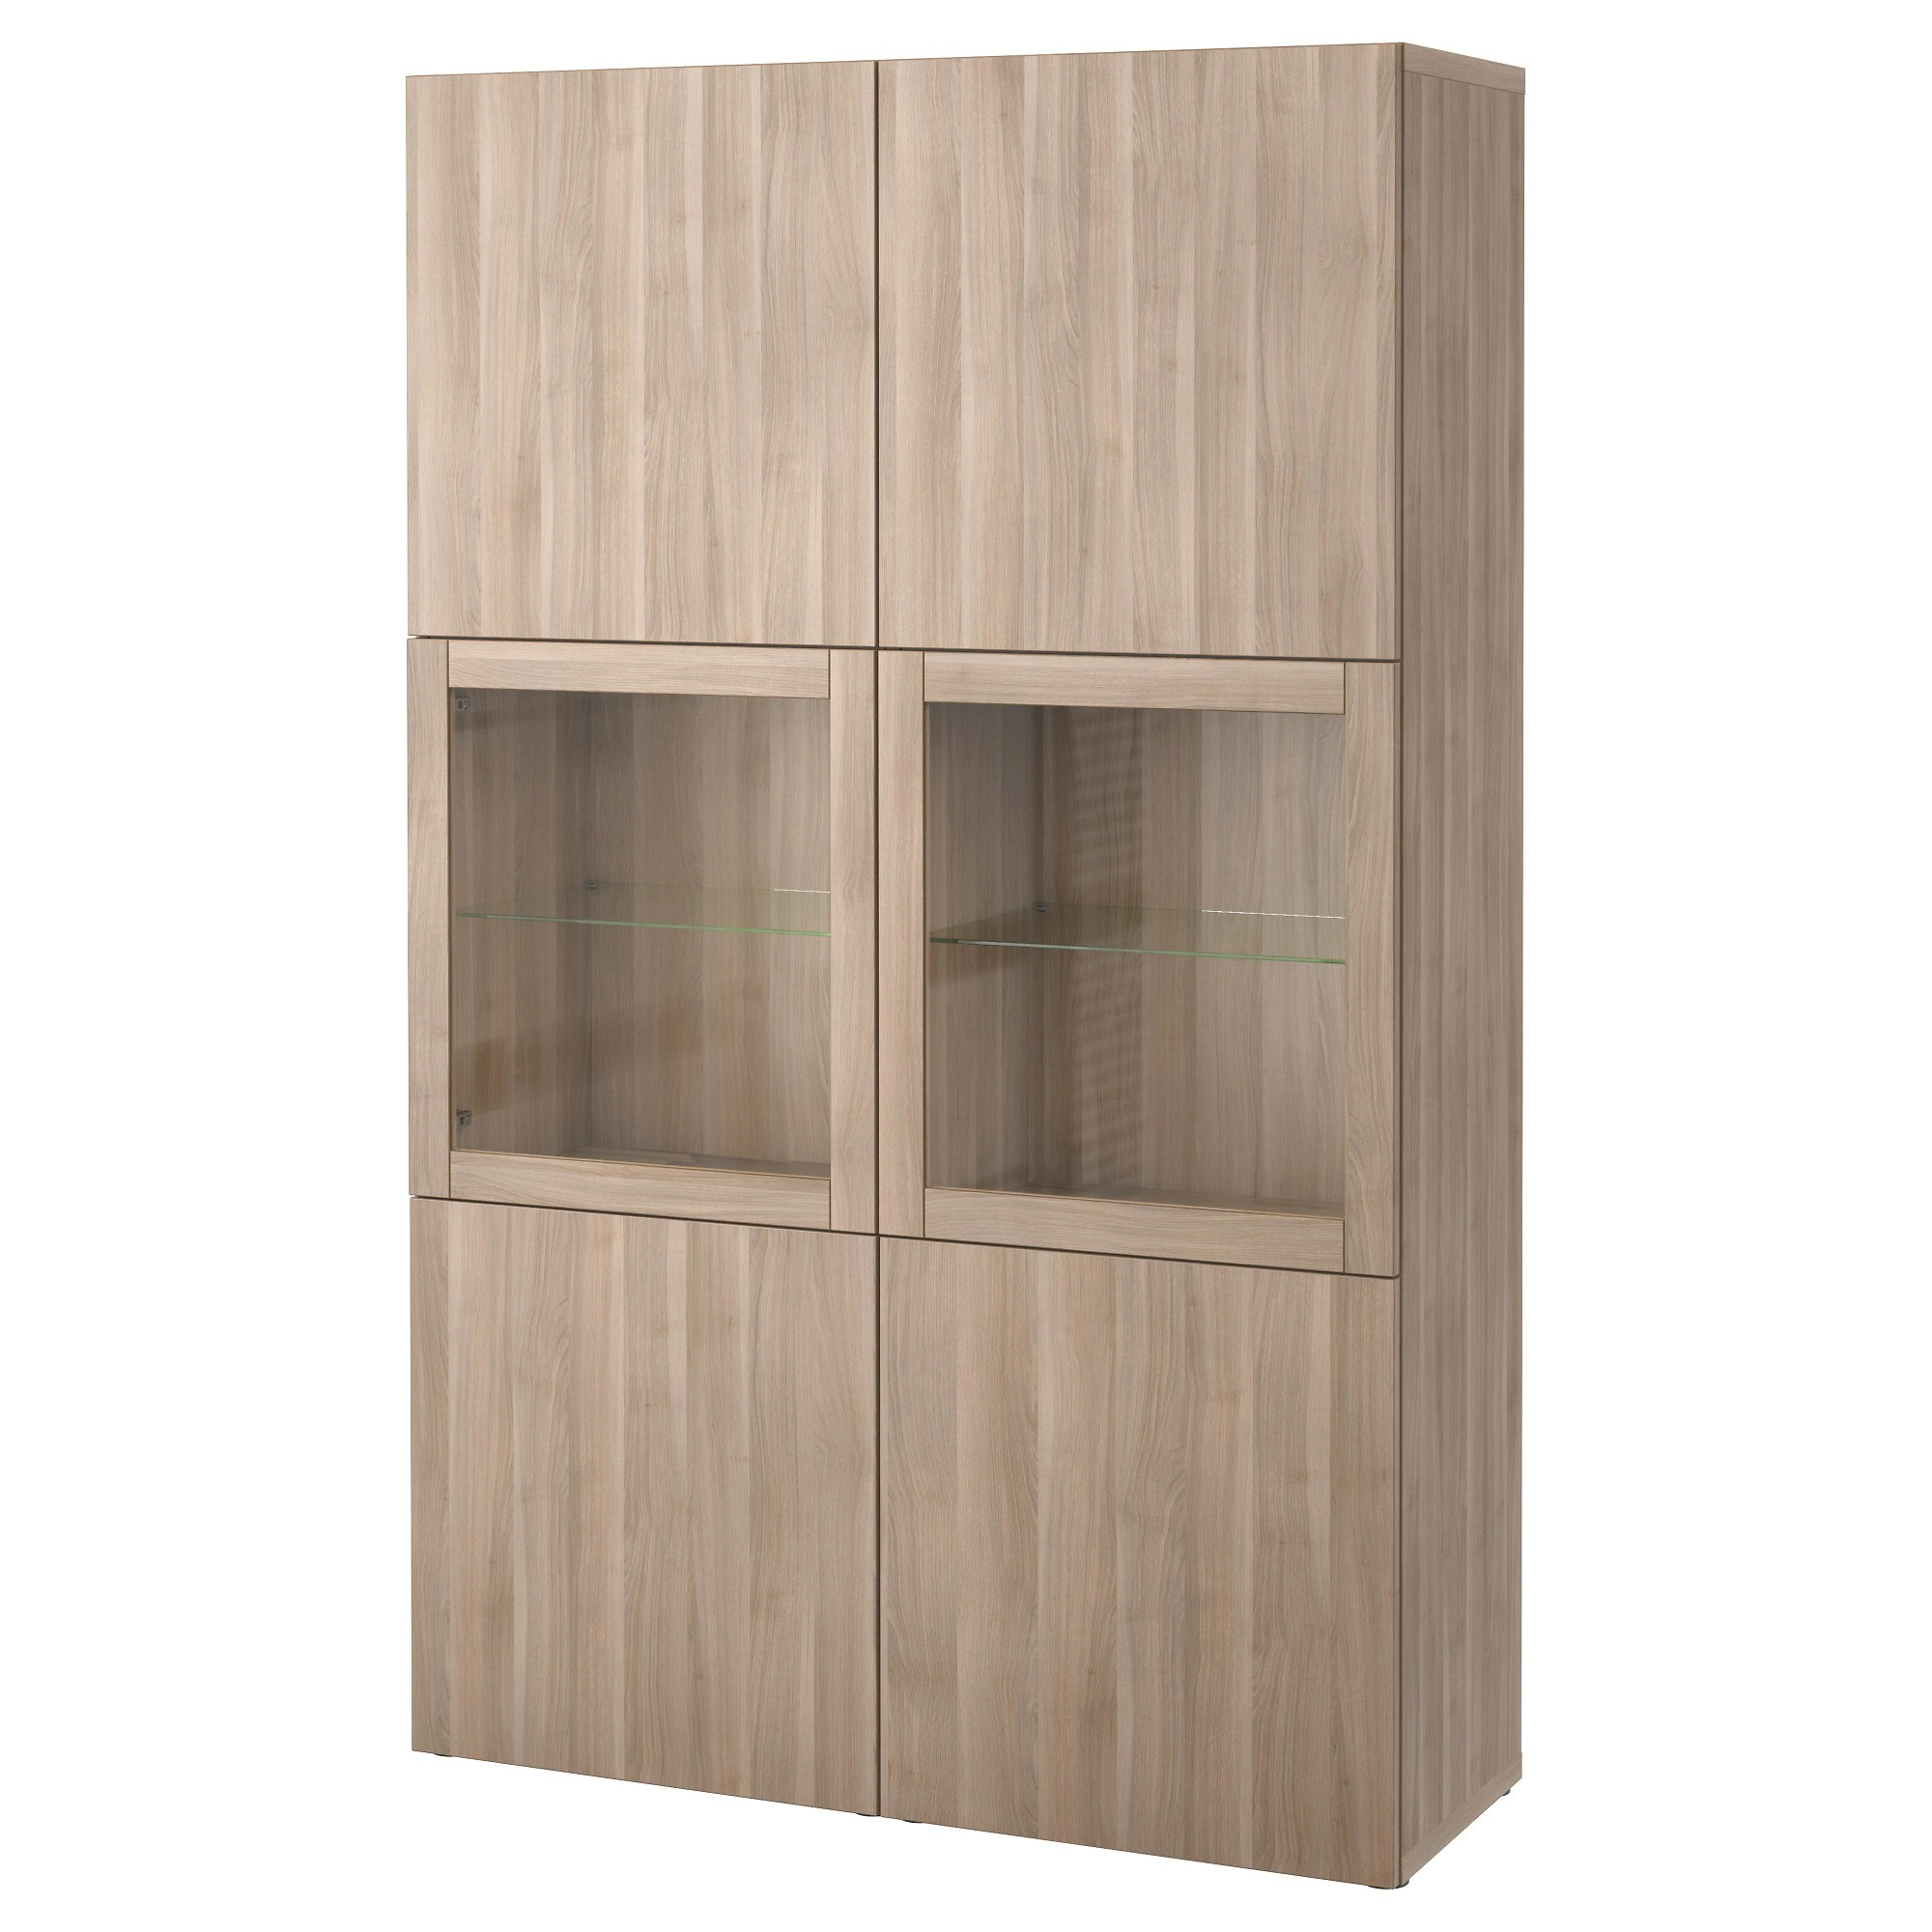 Ikea Kast Besta Storage Combination W Glass Doors BestÅ Lappviken Sindvik Grey Stained Walnut Eff Clear Glass